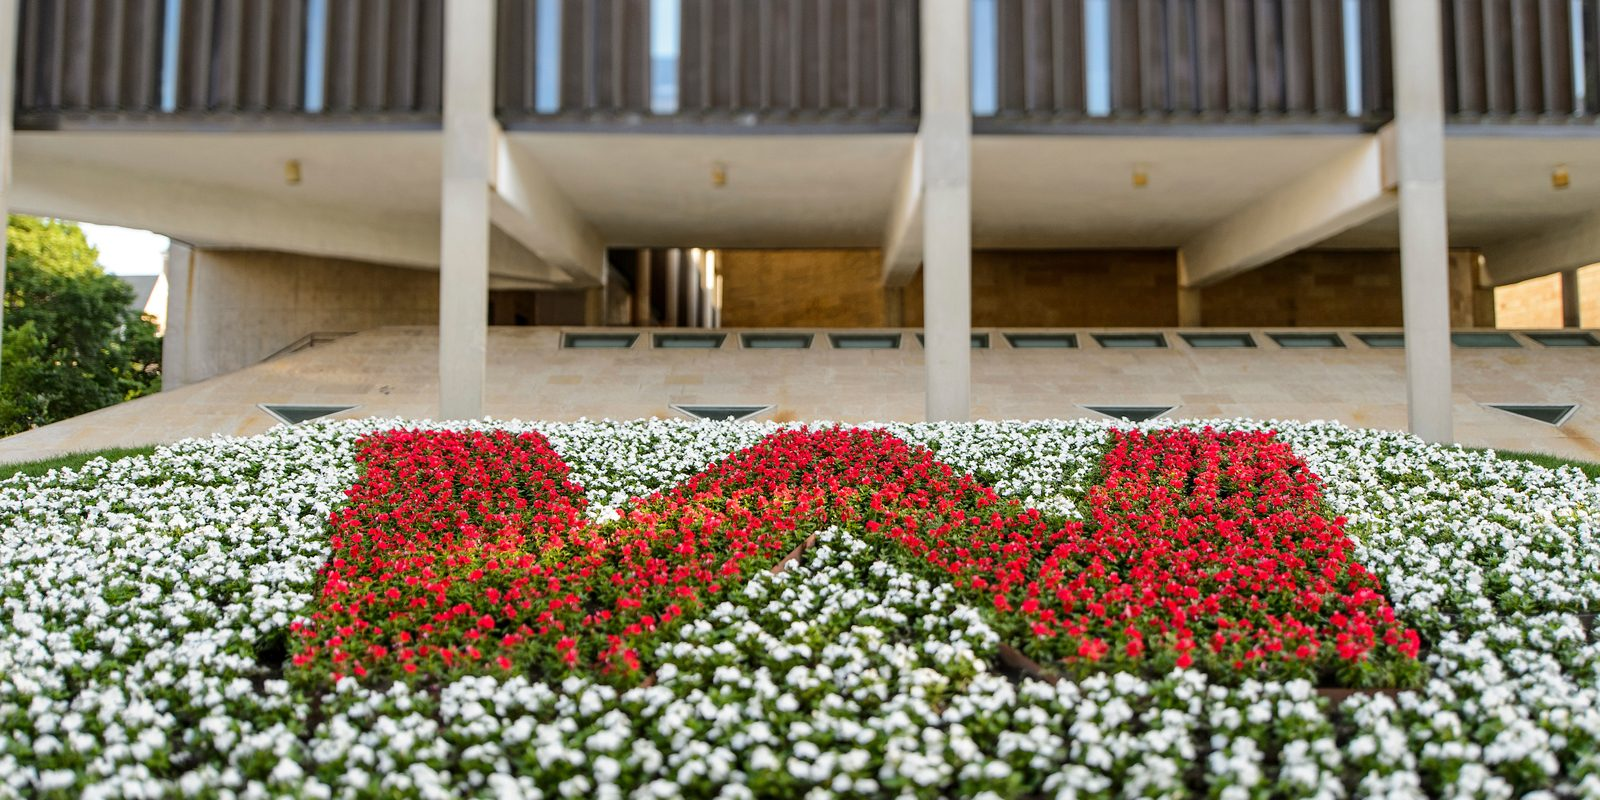 Full Banner Arts Humanities Building Flowers 1600X800 3 30 18